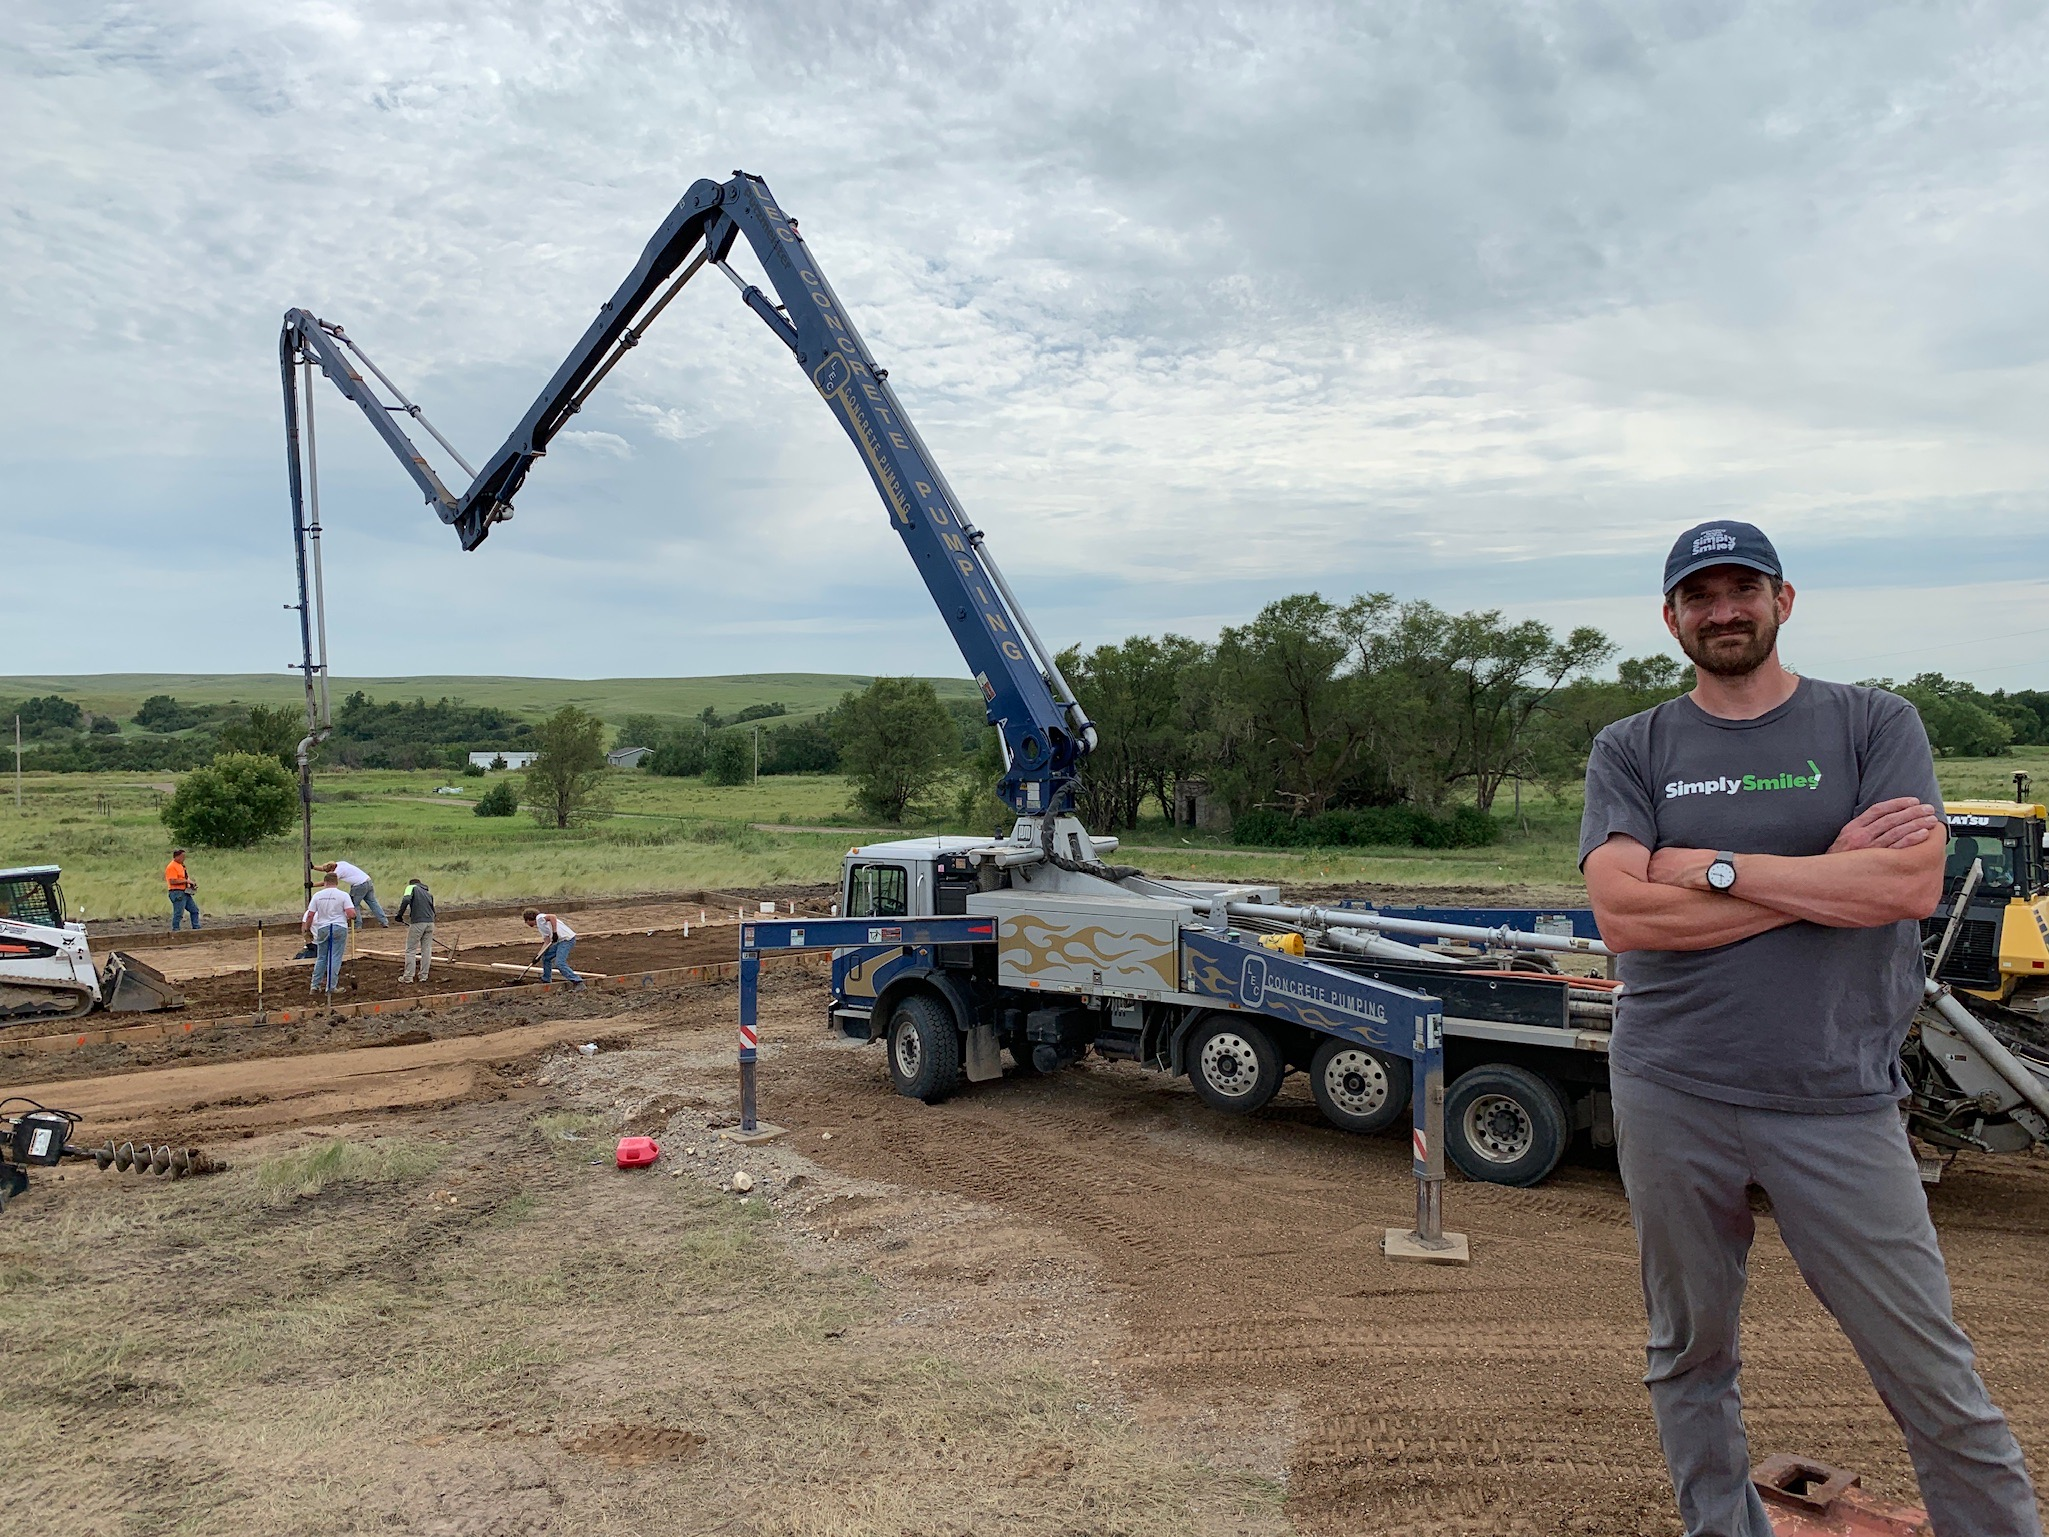 7/24/19: Simply Smiles President and Founder Bryan Nurnberger at the site of our Children's Village as the concrete slab is being poured.